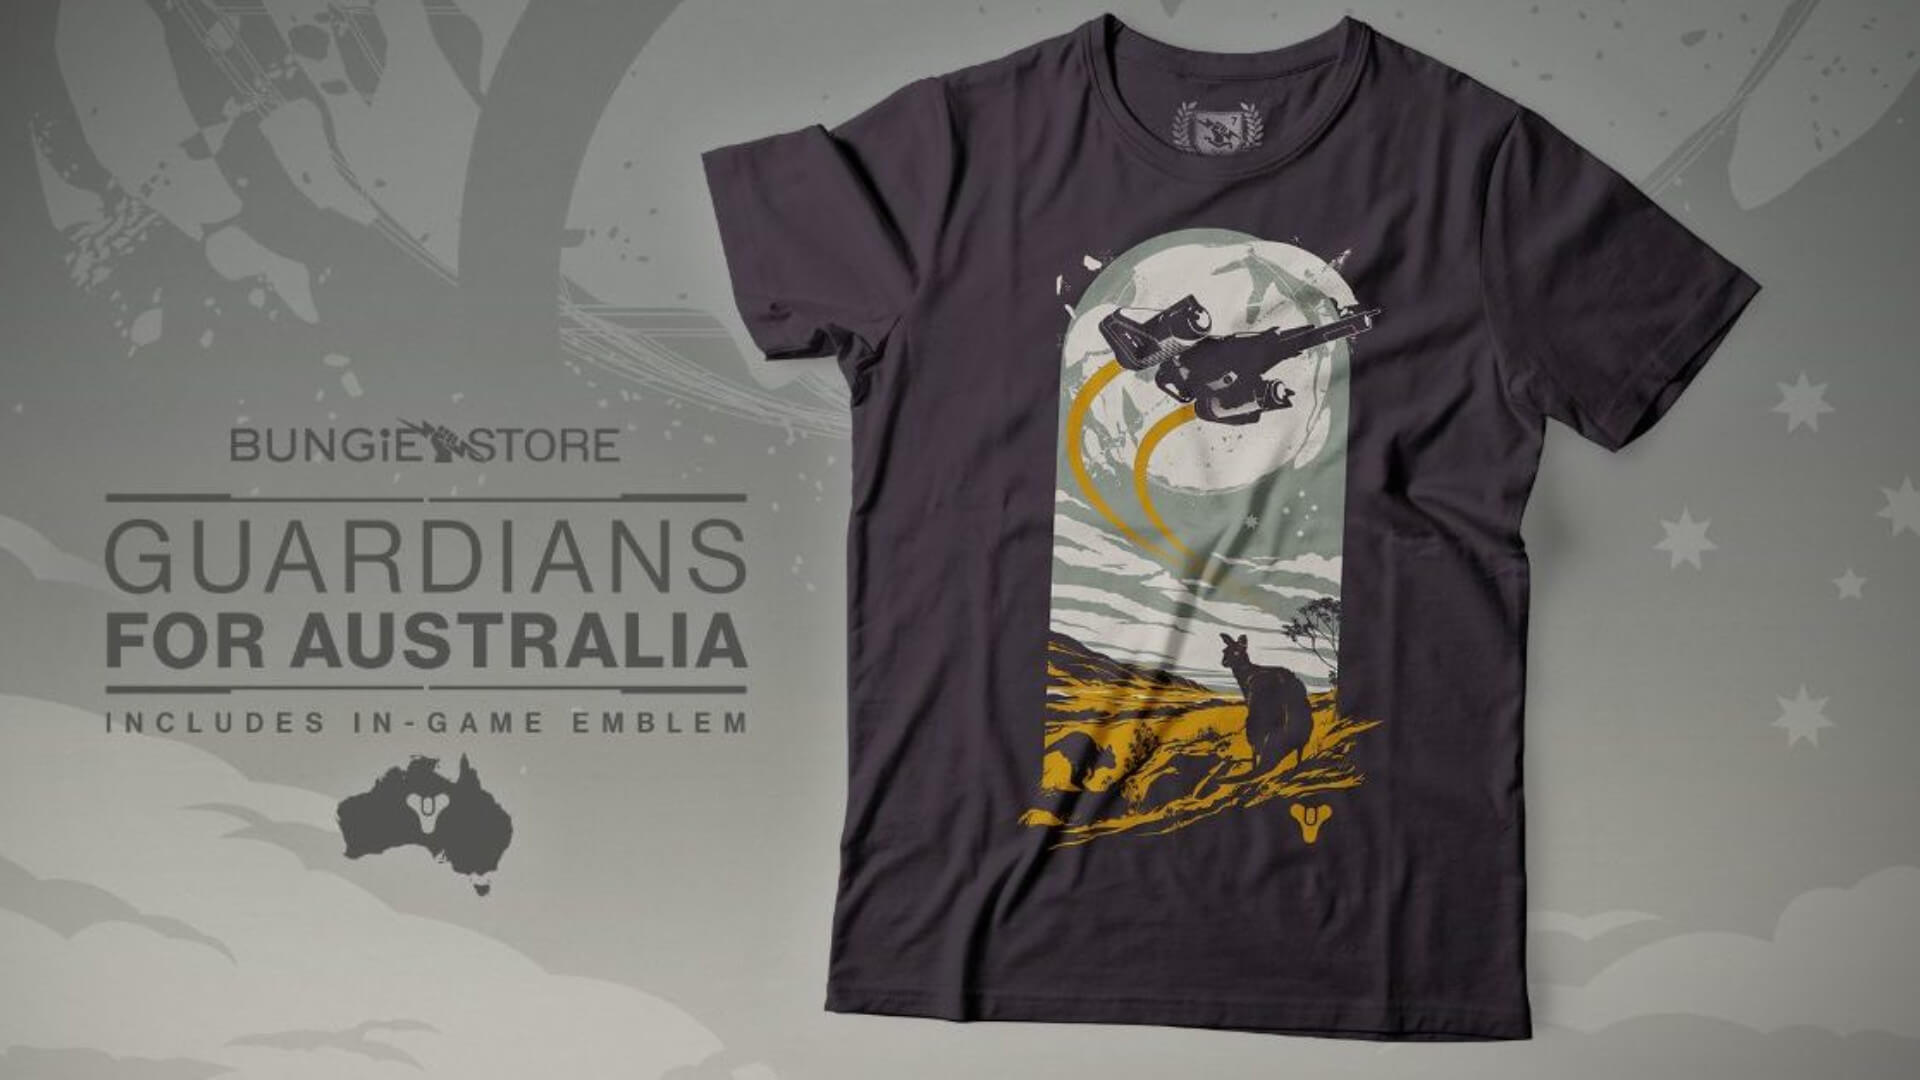 Bungie Steps Up for Australia with T-shirts